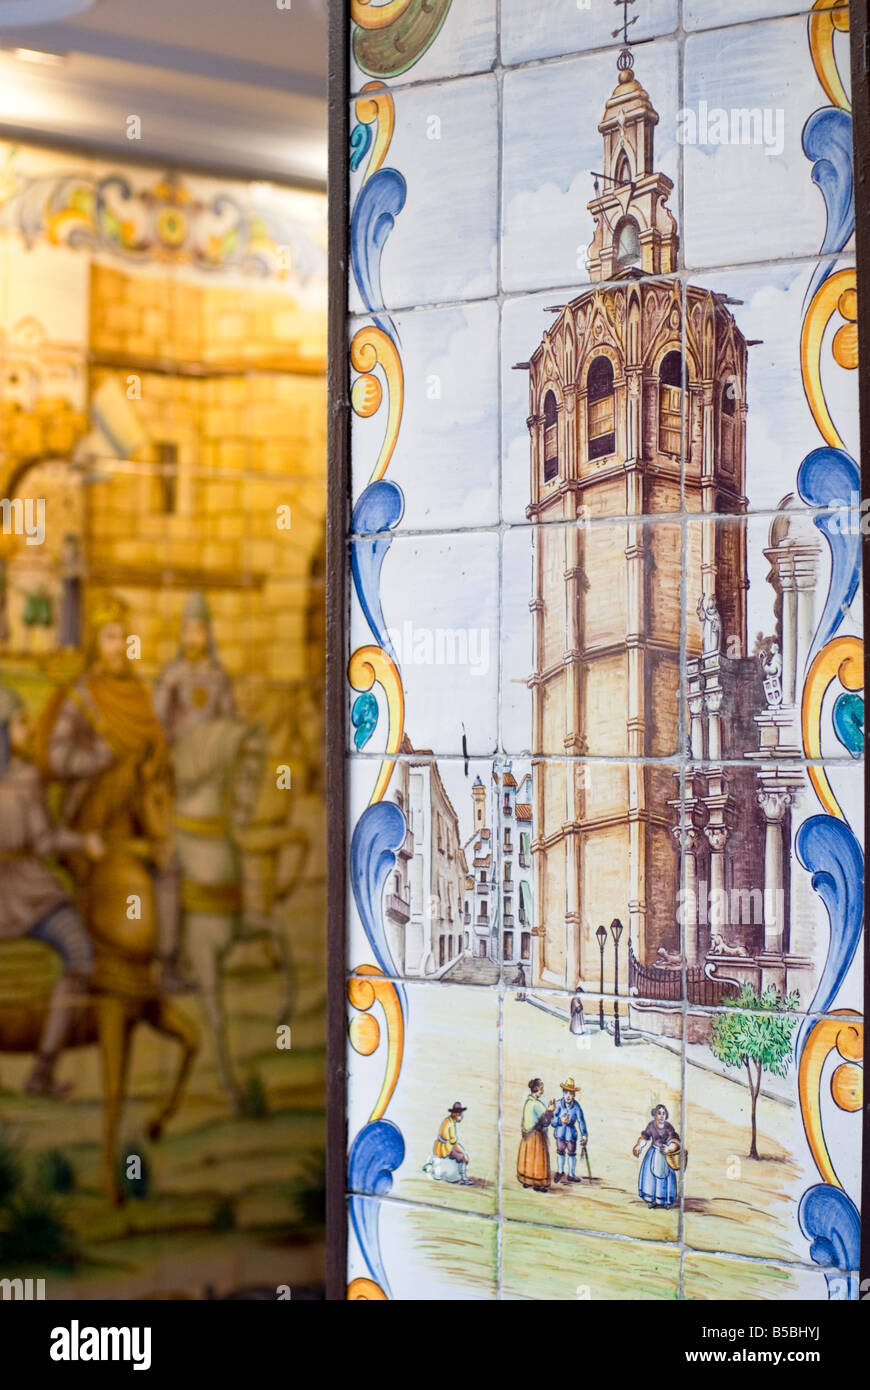 Detail of hand painted tiles or Azulejos of the El Micalet cathedral bell tower in historical centre of Valencia - Stock Image